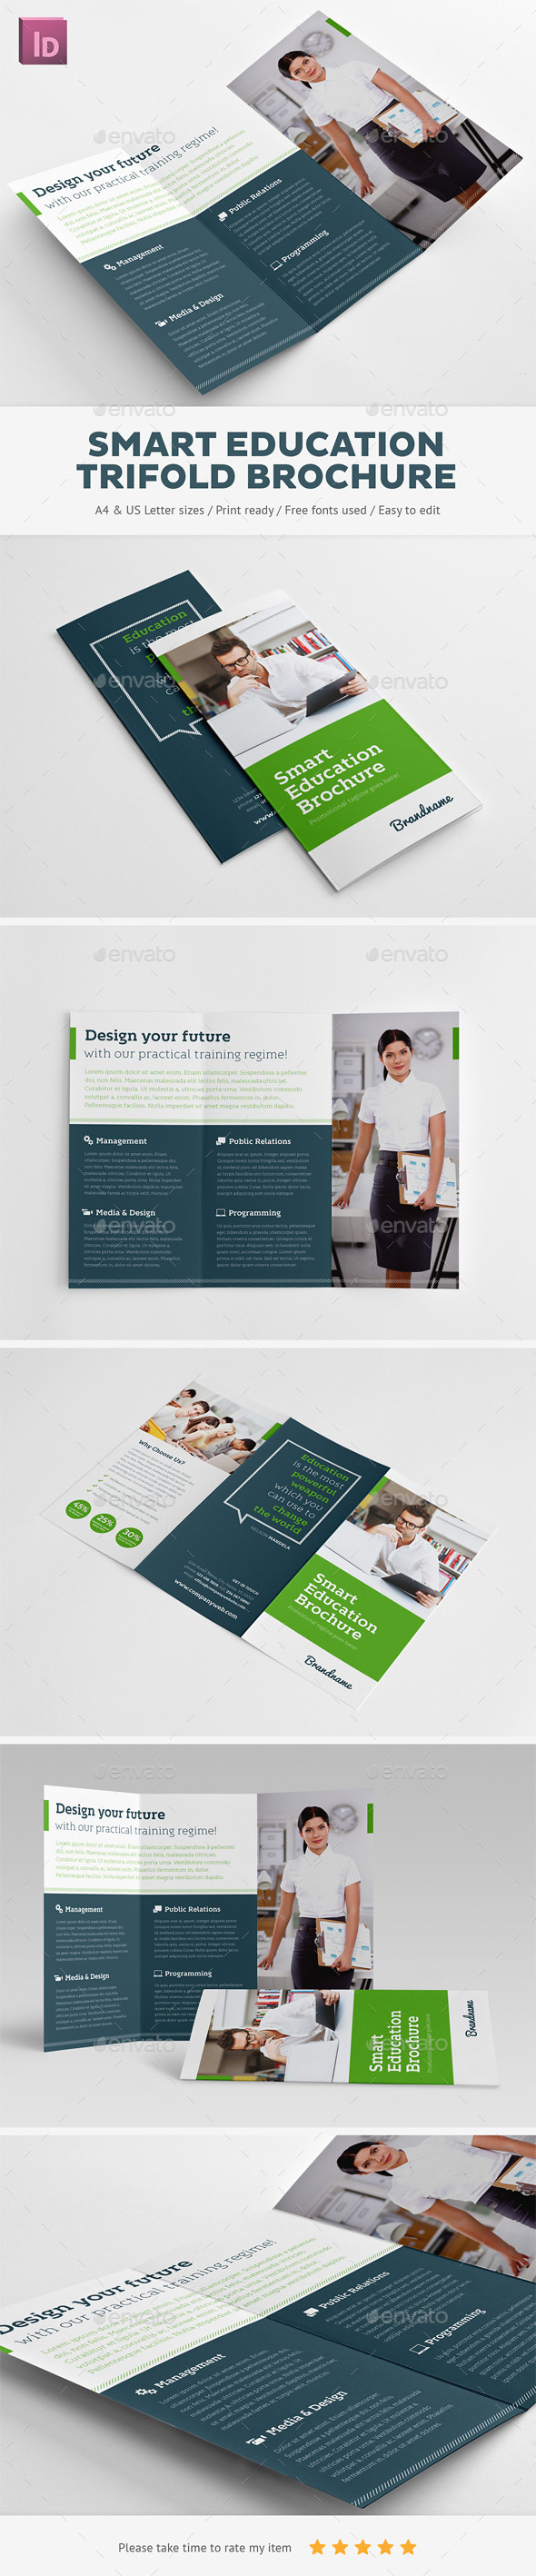 Smart Education Trifold Brochure - Brochures Print Templates